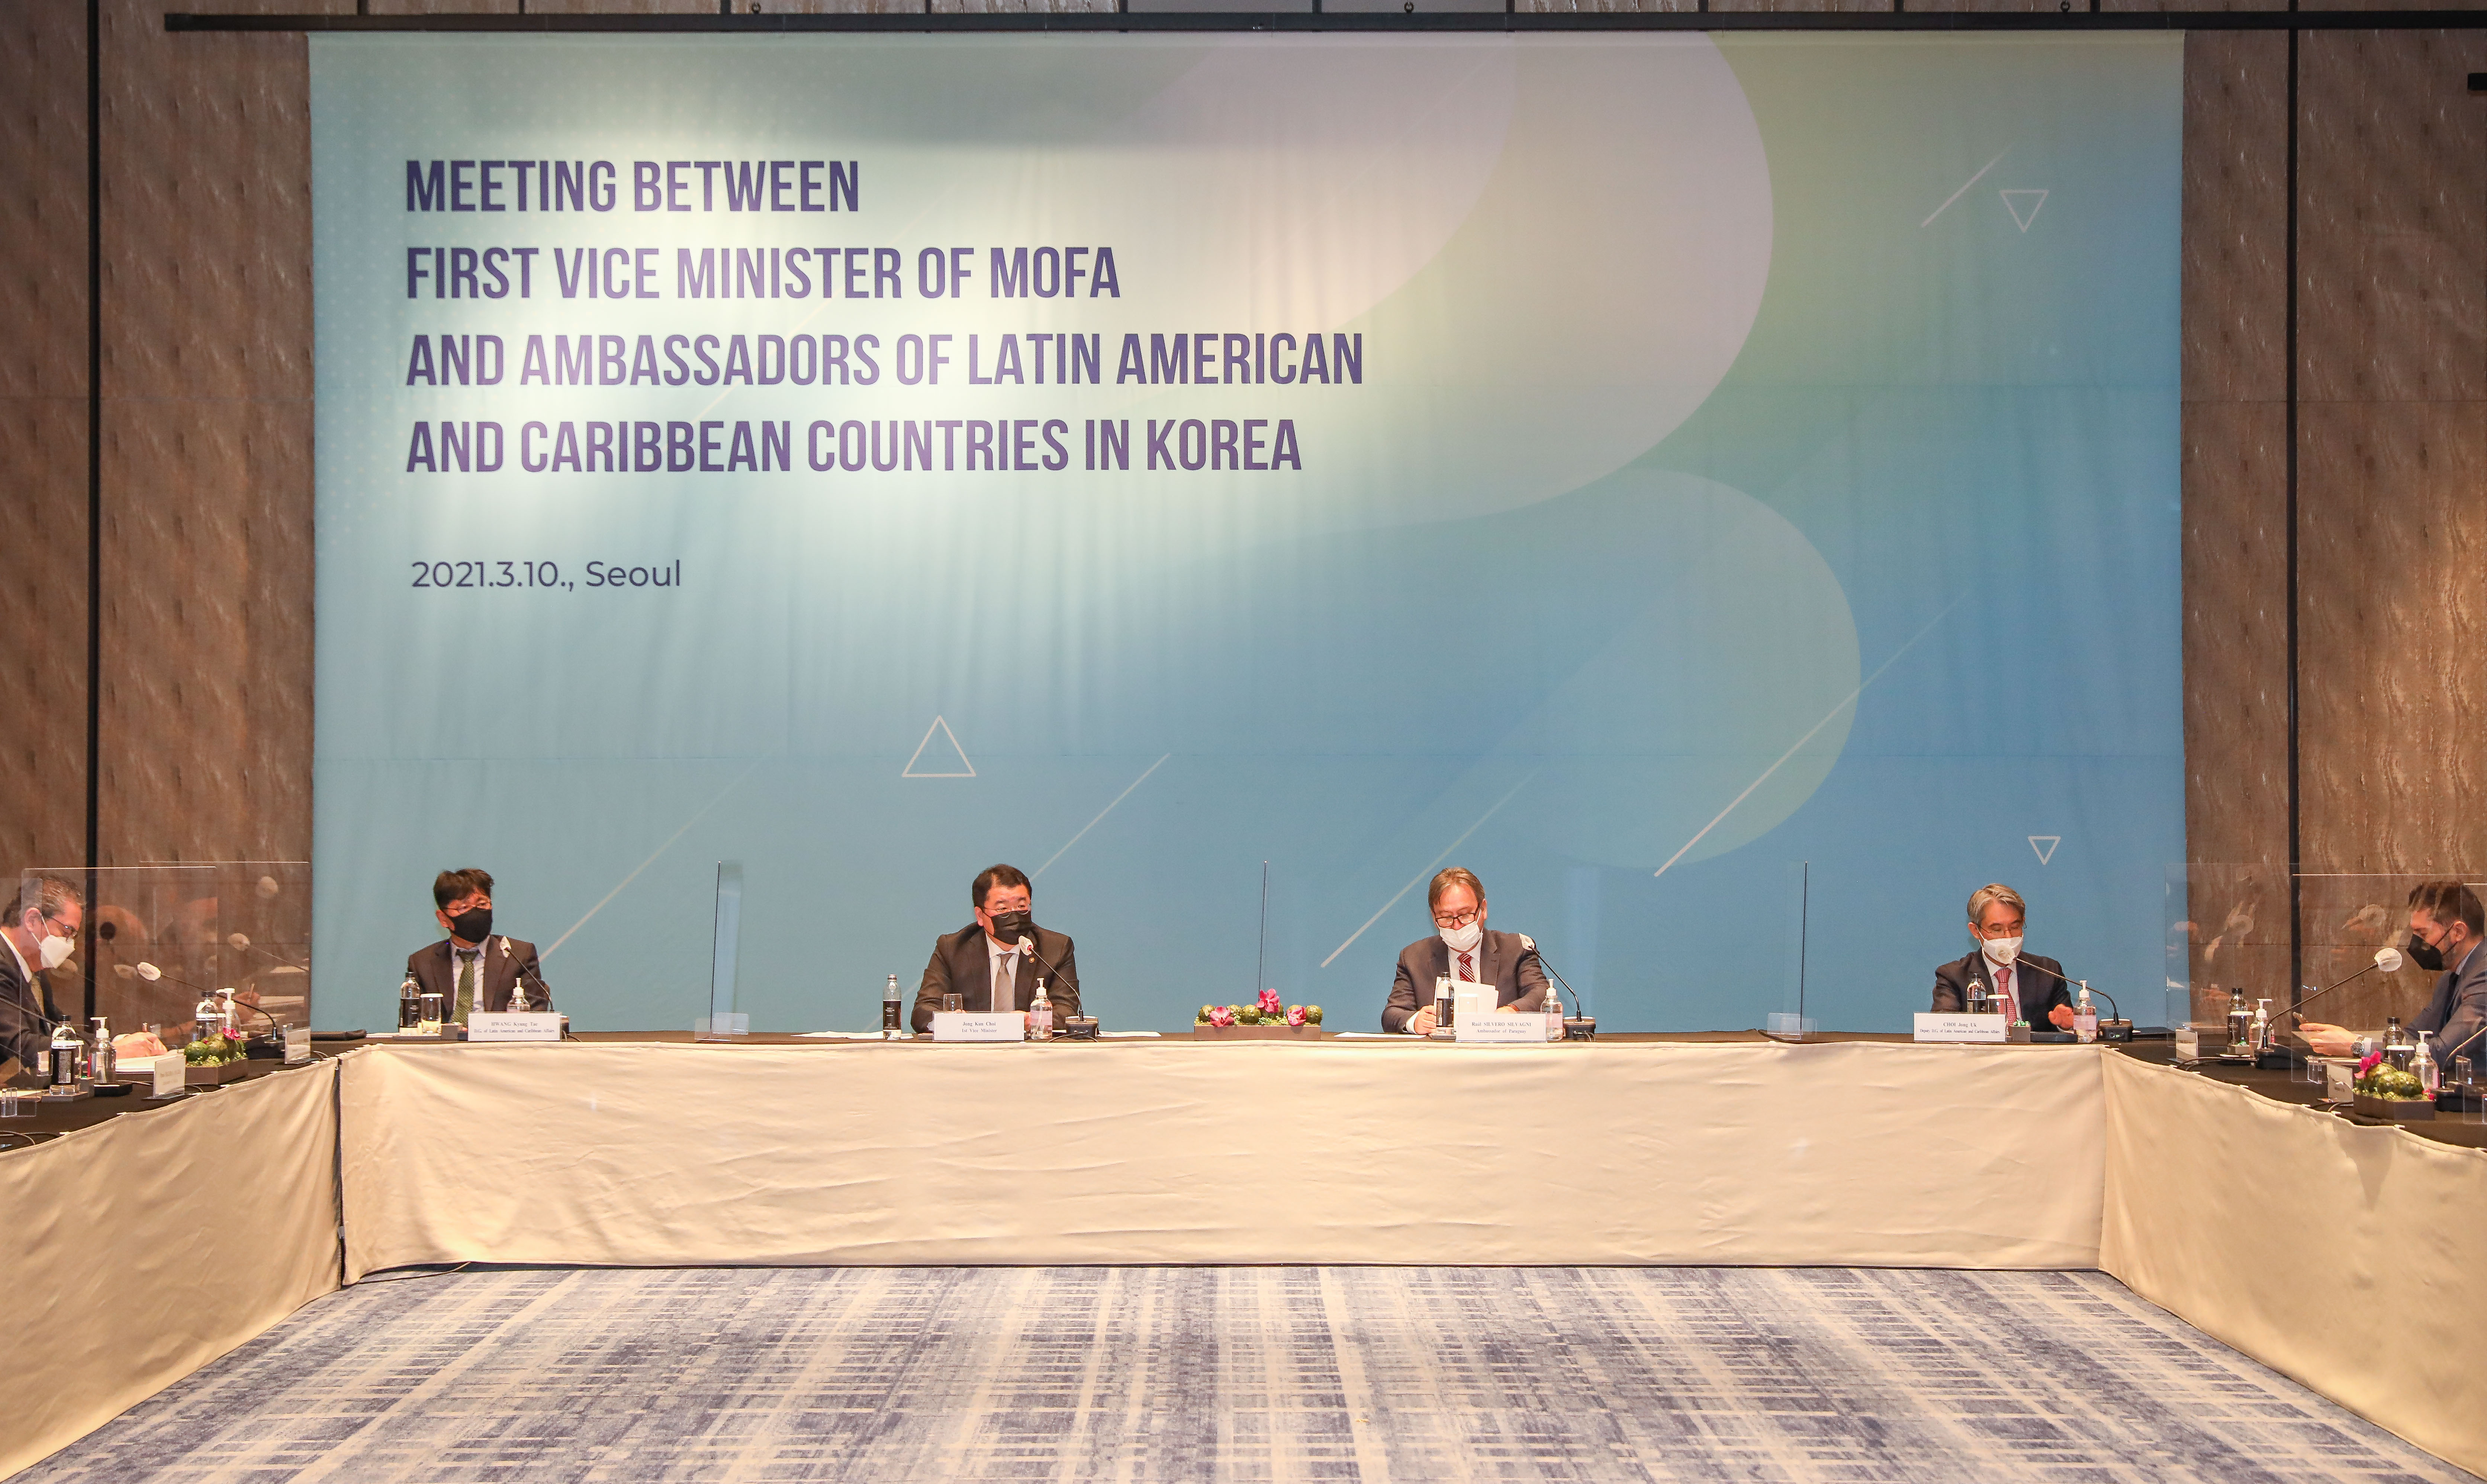 Vice Minister of Foreign Affairs Holds Meeting with Ambassadors of Latin American and Caribbean Countries to Korea